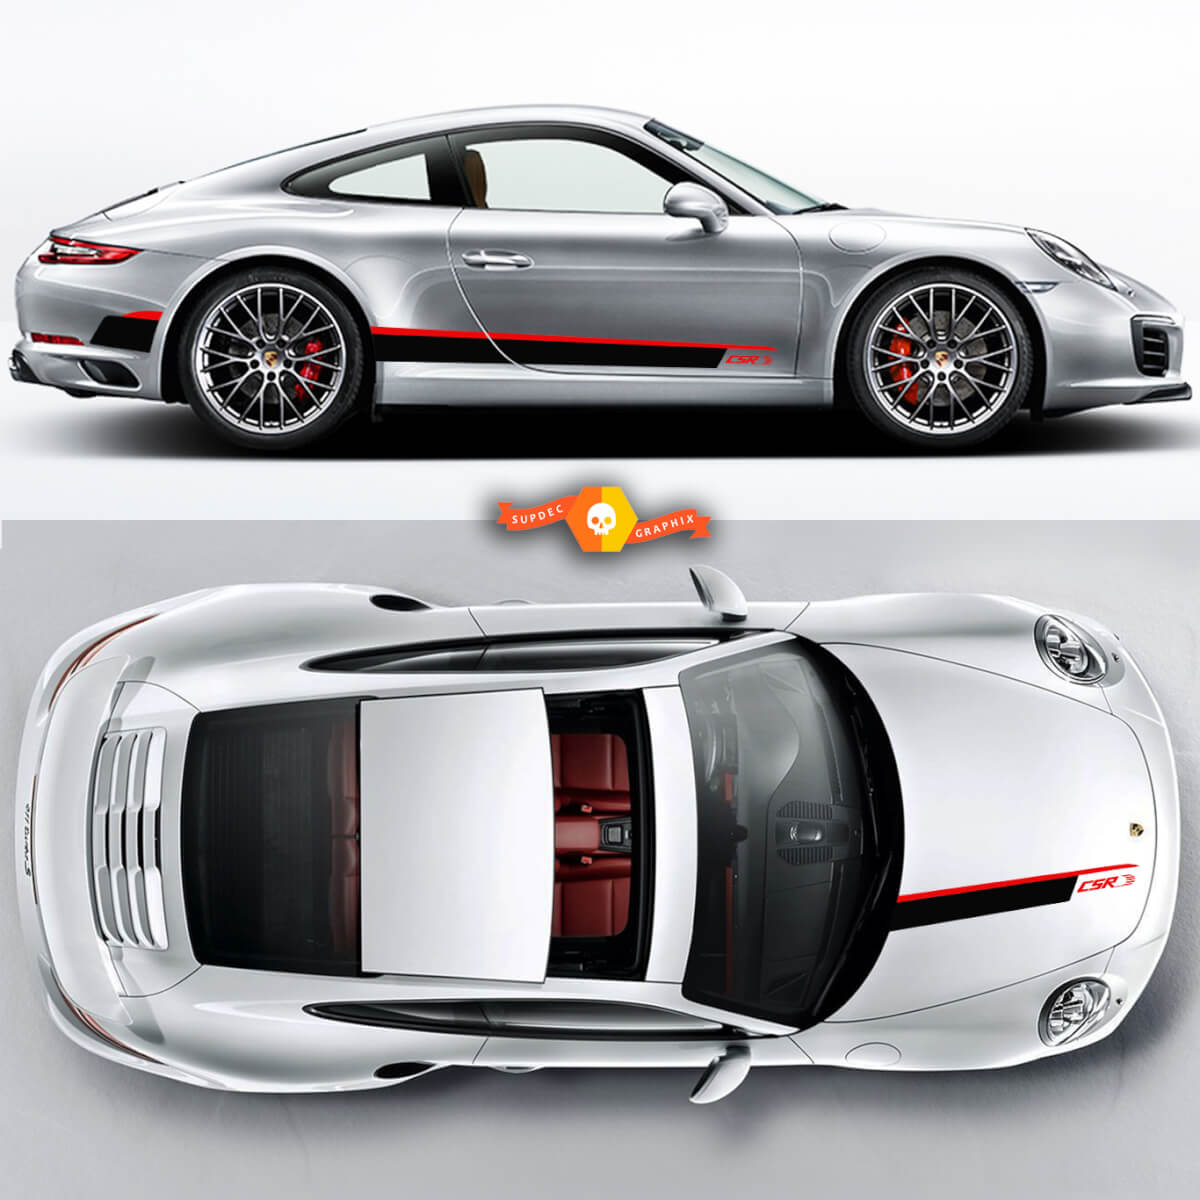 Csr Hood and Rocker Panel Graphic Decals Set Stripes For Porsche Carrera Cayman Boxster Or Any Porsche